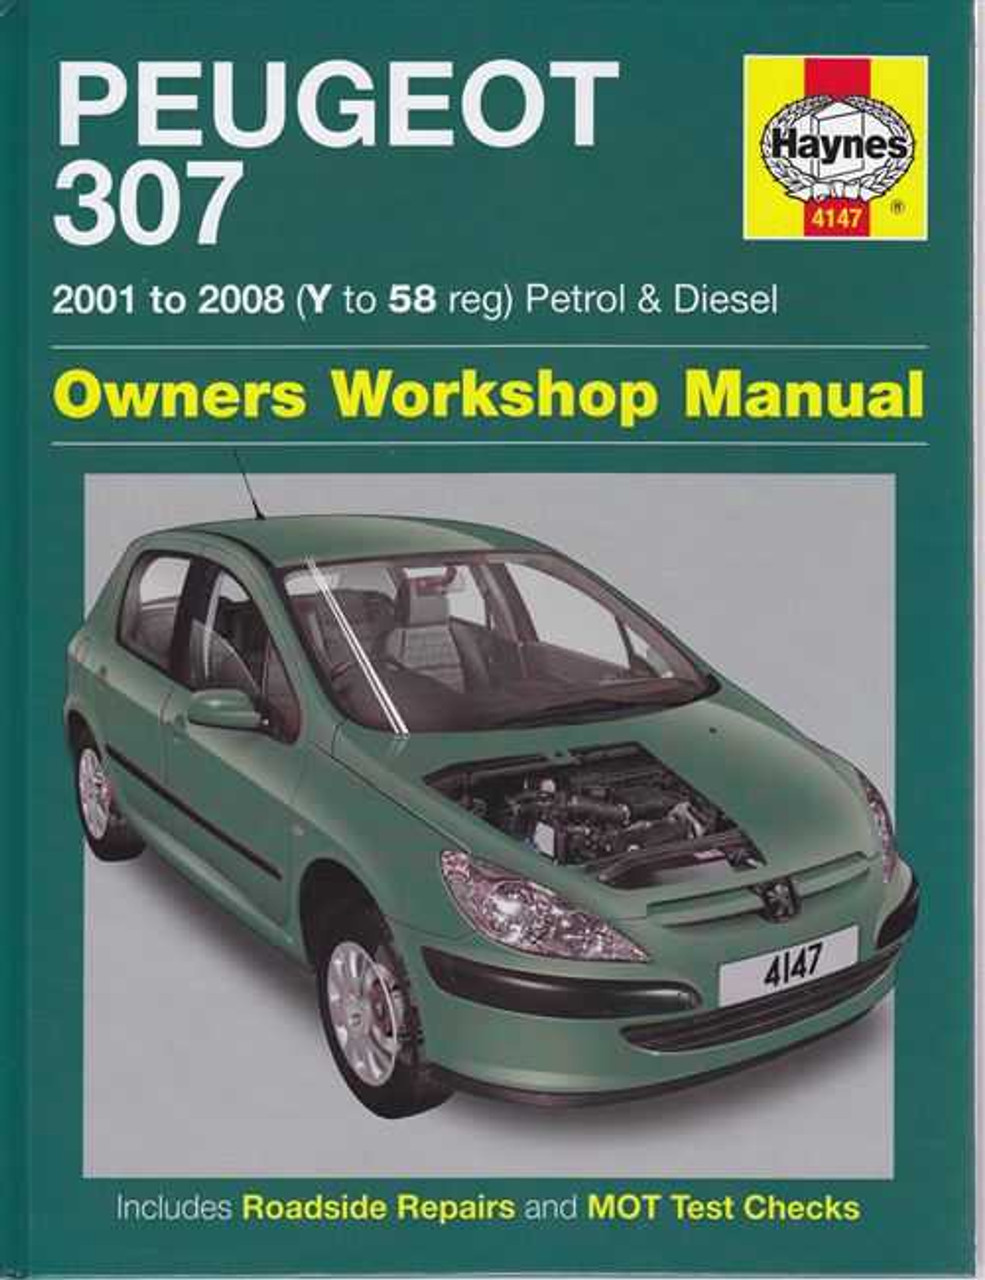 peugeot 307 petrol and diesel 2001 2008 workshop manual rh automotobookshop com au